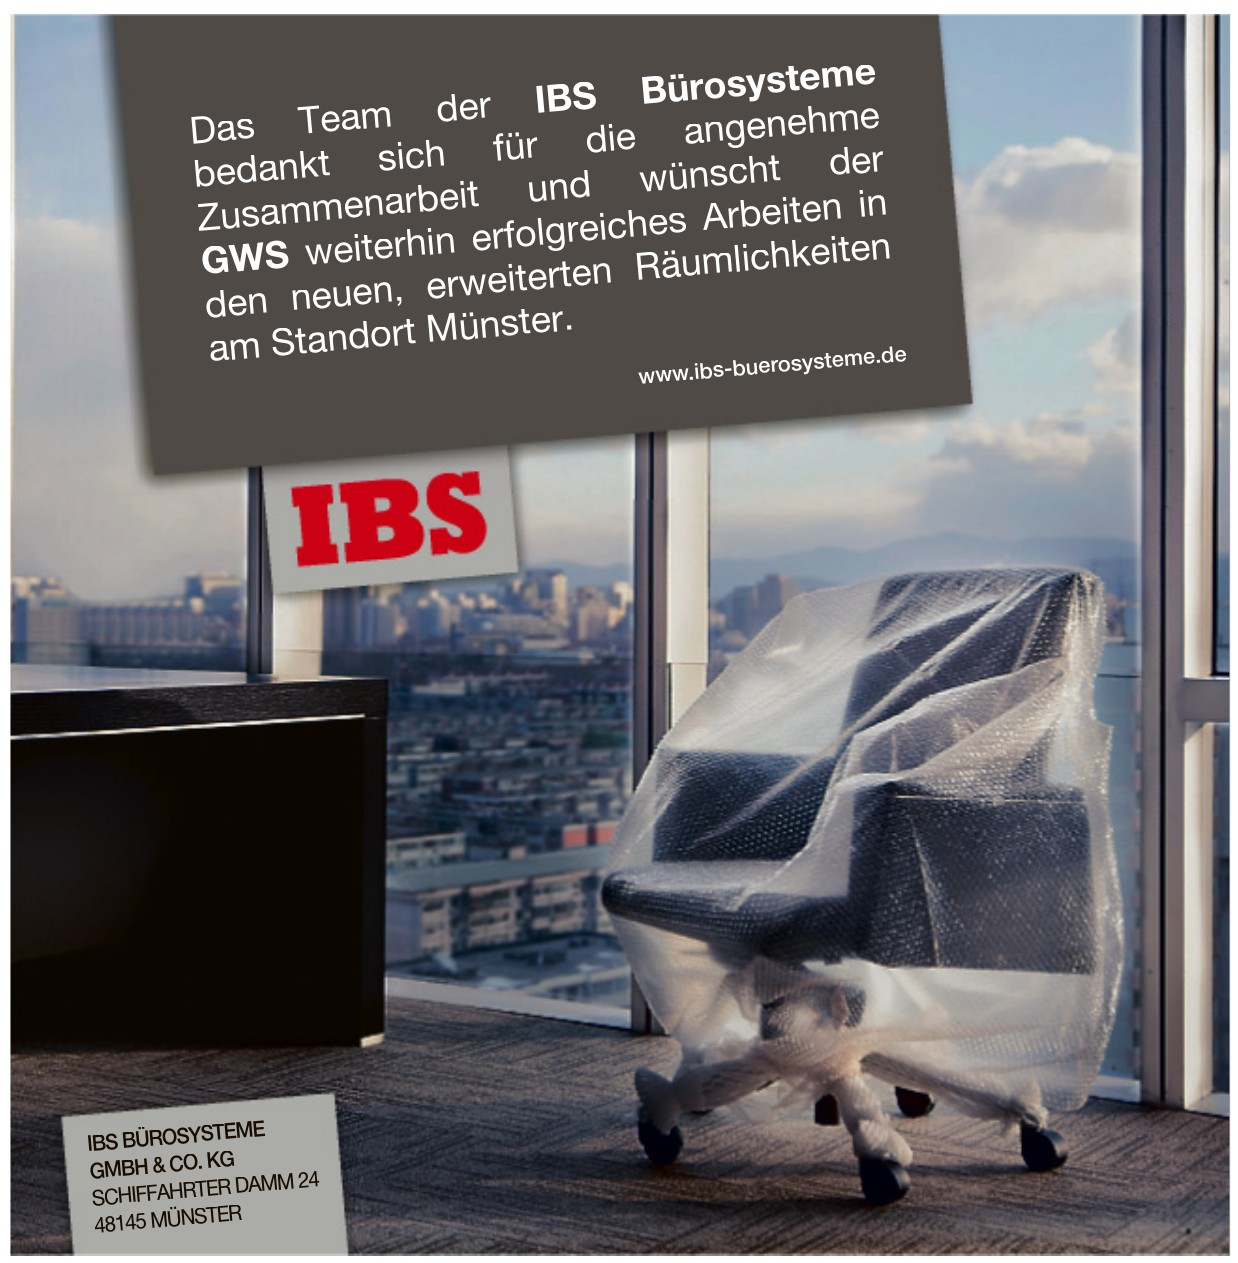 IBS Bürosysteme Karl Isfort GmbH & Co. KG